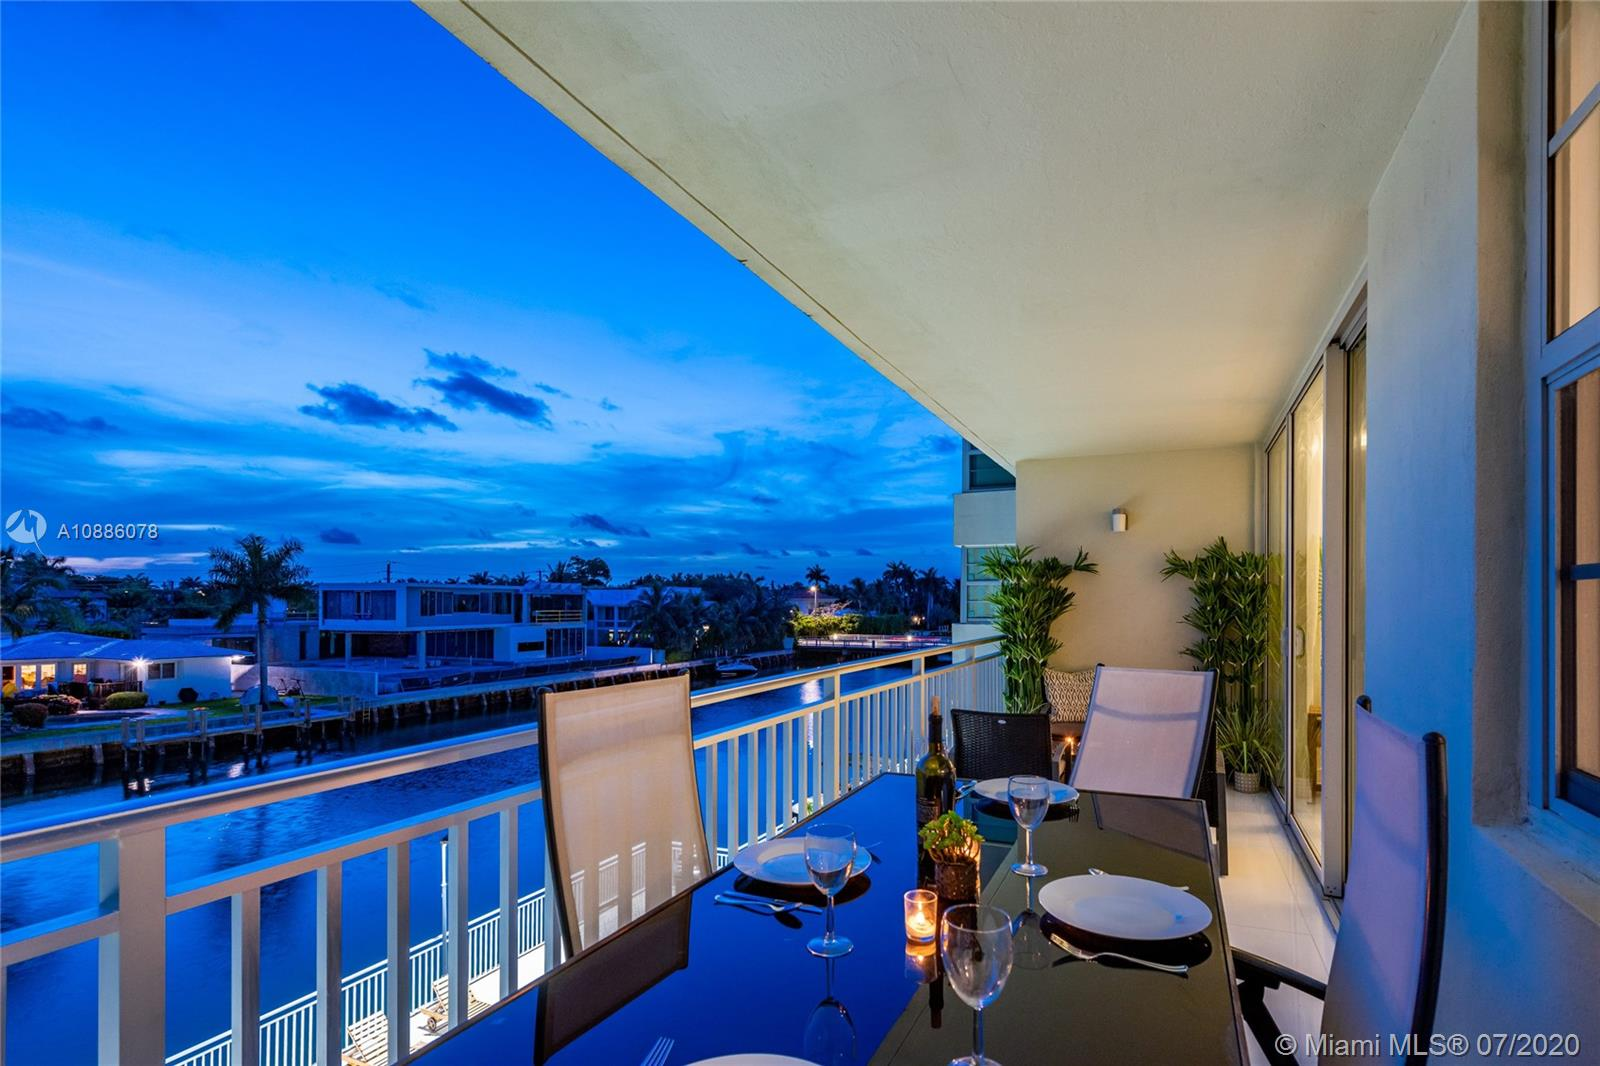 Live superbly in this completely updated intracoastal waterfront unit. Carefree open flow living, dining and expansive balcony—perfect to relax with a glass of wine or host a twilight dinner party to enjoy the glistening water and boats go by. Beautifully renovated with white marble and French Oak wood floors, designer baths, luxe lighting and an open gourmet chef's kitchen. Unwind in the large master ensuite with double vanities, illuminated mirrors and incredible walk-in closet. Special treat—an enclosed den that's perfect as a second bedroom. Even better—the furniture's included! All in a boutique waterfront condo with pool, club room, covered parking and dockage. An ideal getaway in a great Bay Harbor location, near Bal Harbor shops, just a block to Ruth K. Broad Bay Harbor K-8 Center.